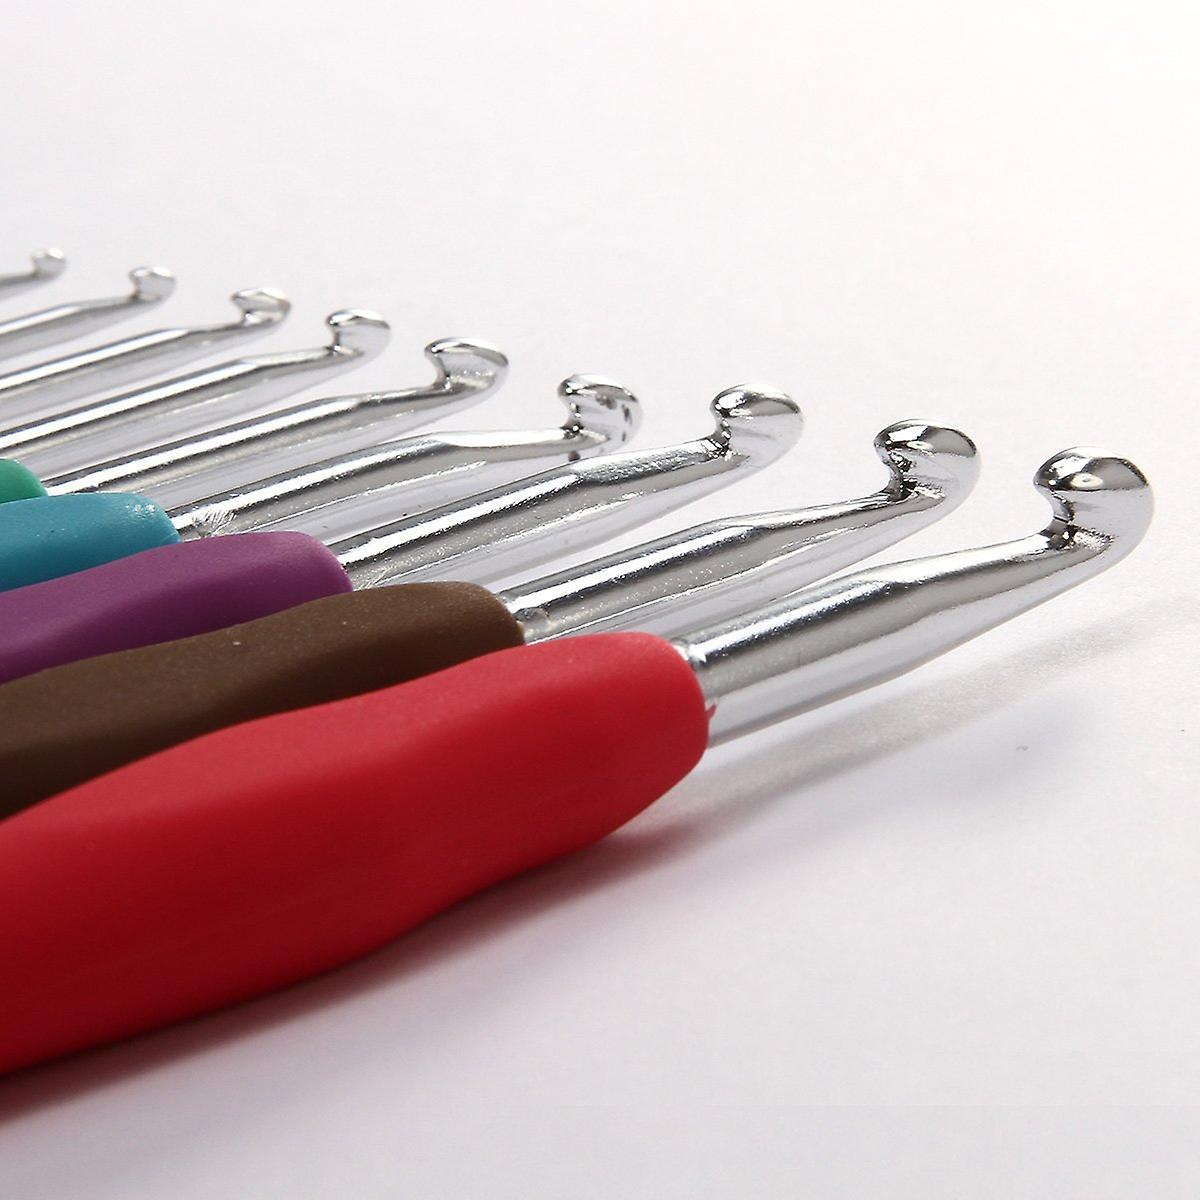 Set of 9 High Quality Aluminium Crochet Hooks Needles with Colourful Soft Rubber Grip Handles - in Sizes 2mm 2.5mm 3mm 3.5mm 4mm 4.5mm 5mm 5.5m